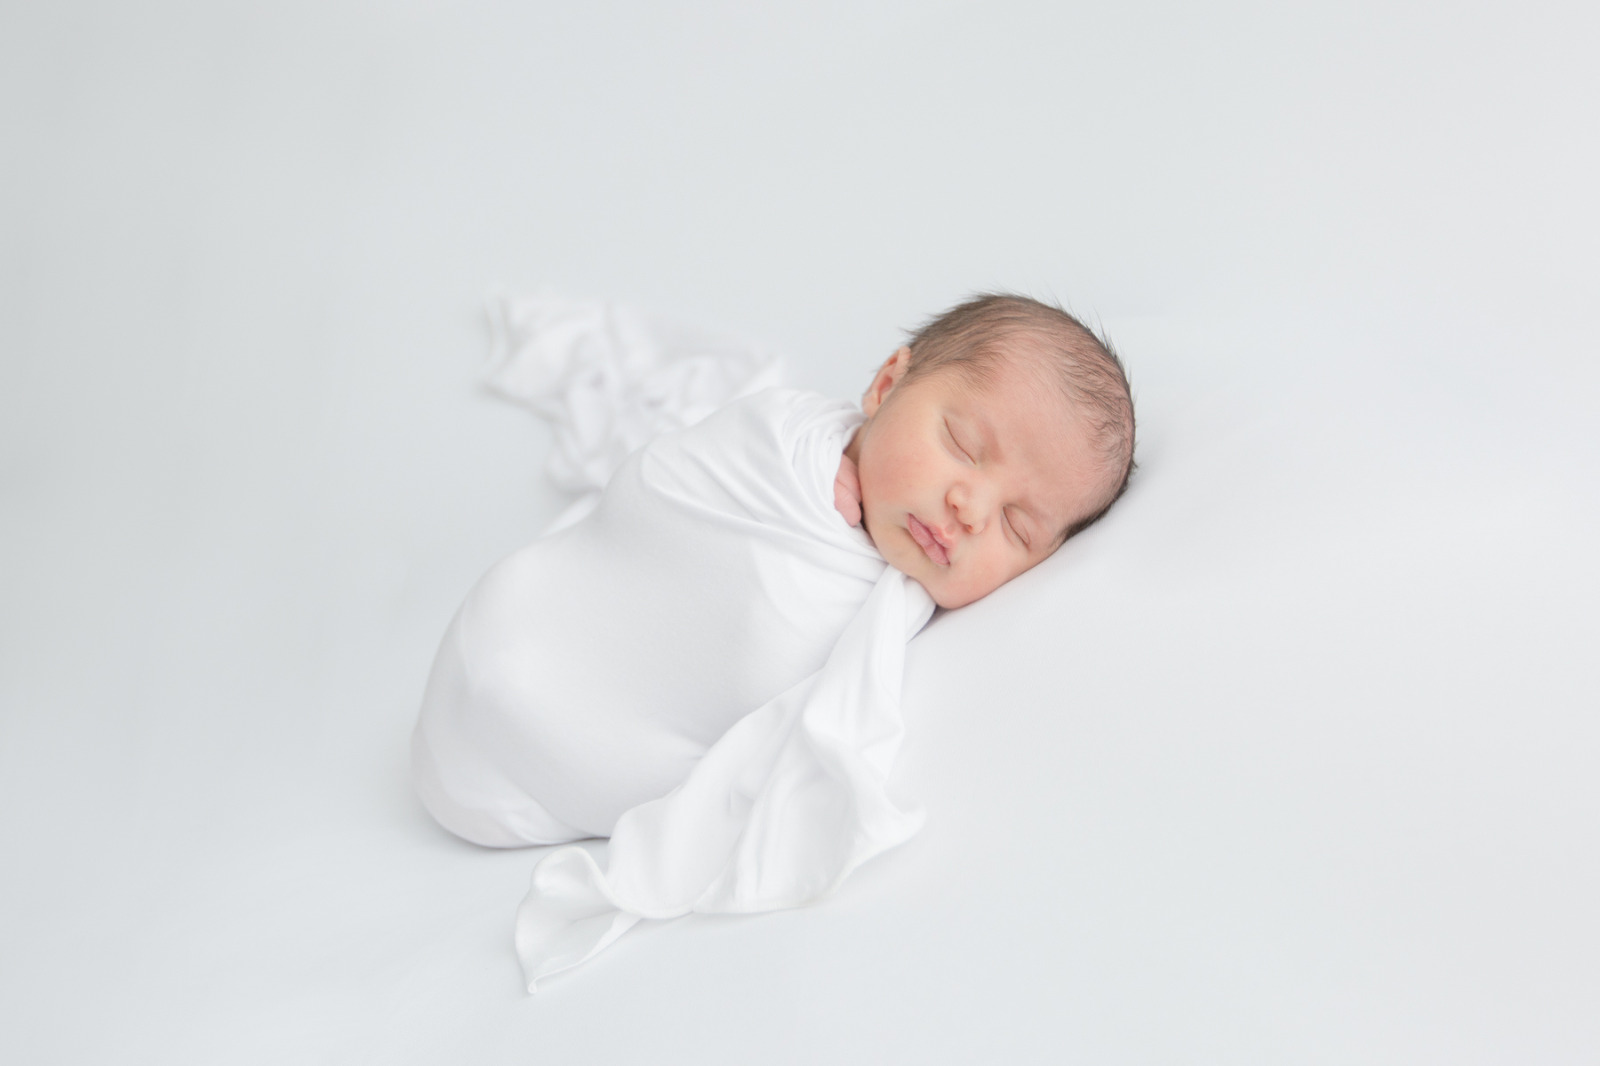 albuquerque newborn photographer, rio rancho newborn photographer, santa fe newborn photographer,